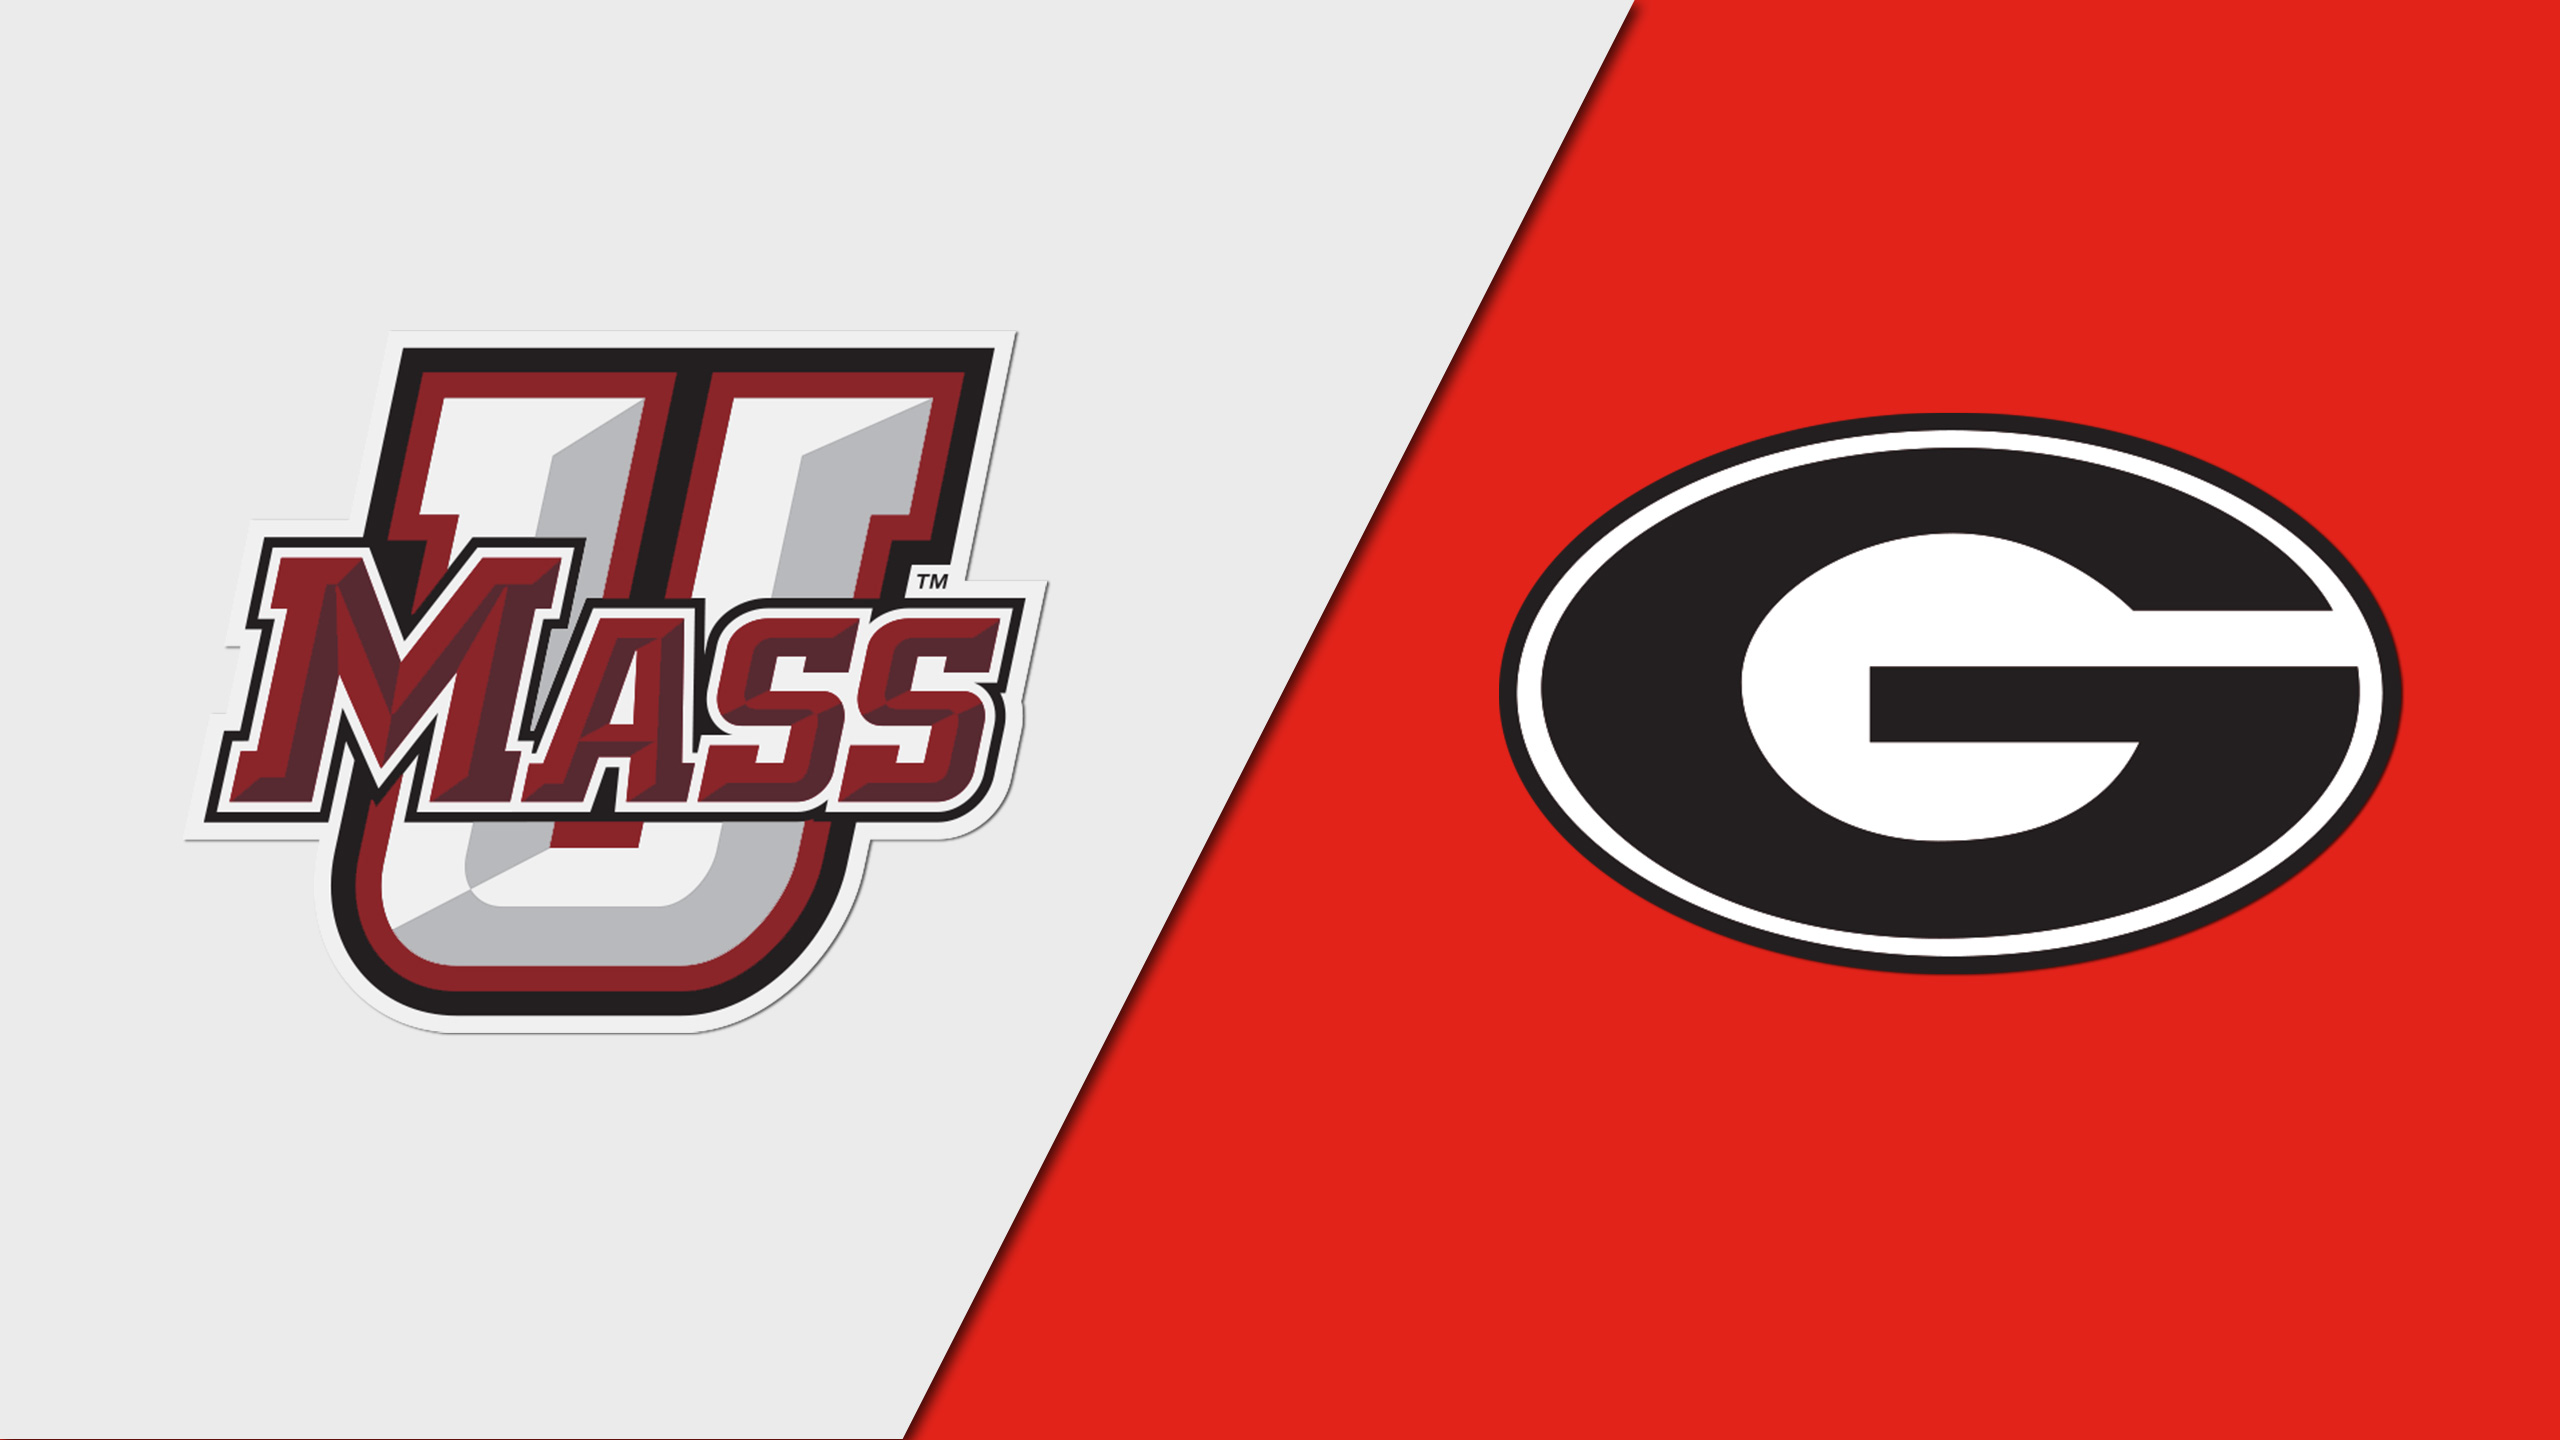 UMass vs. #9 Georgia (Softball)